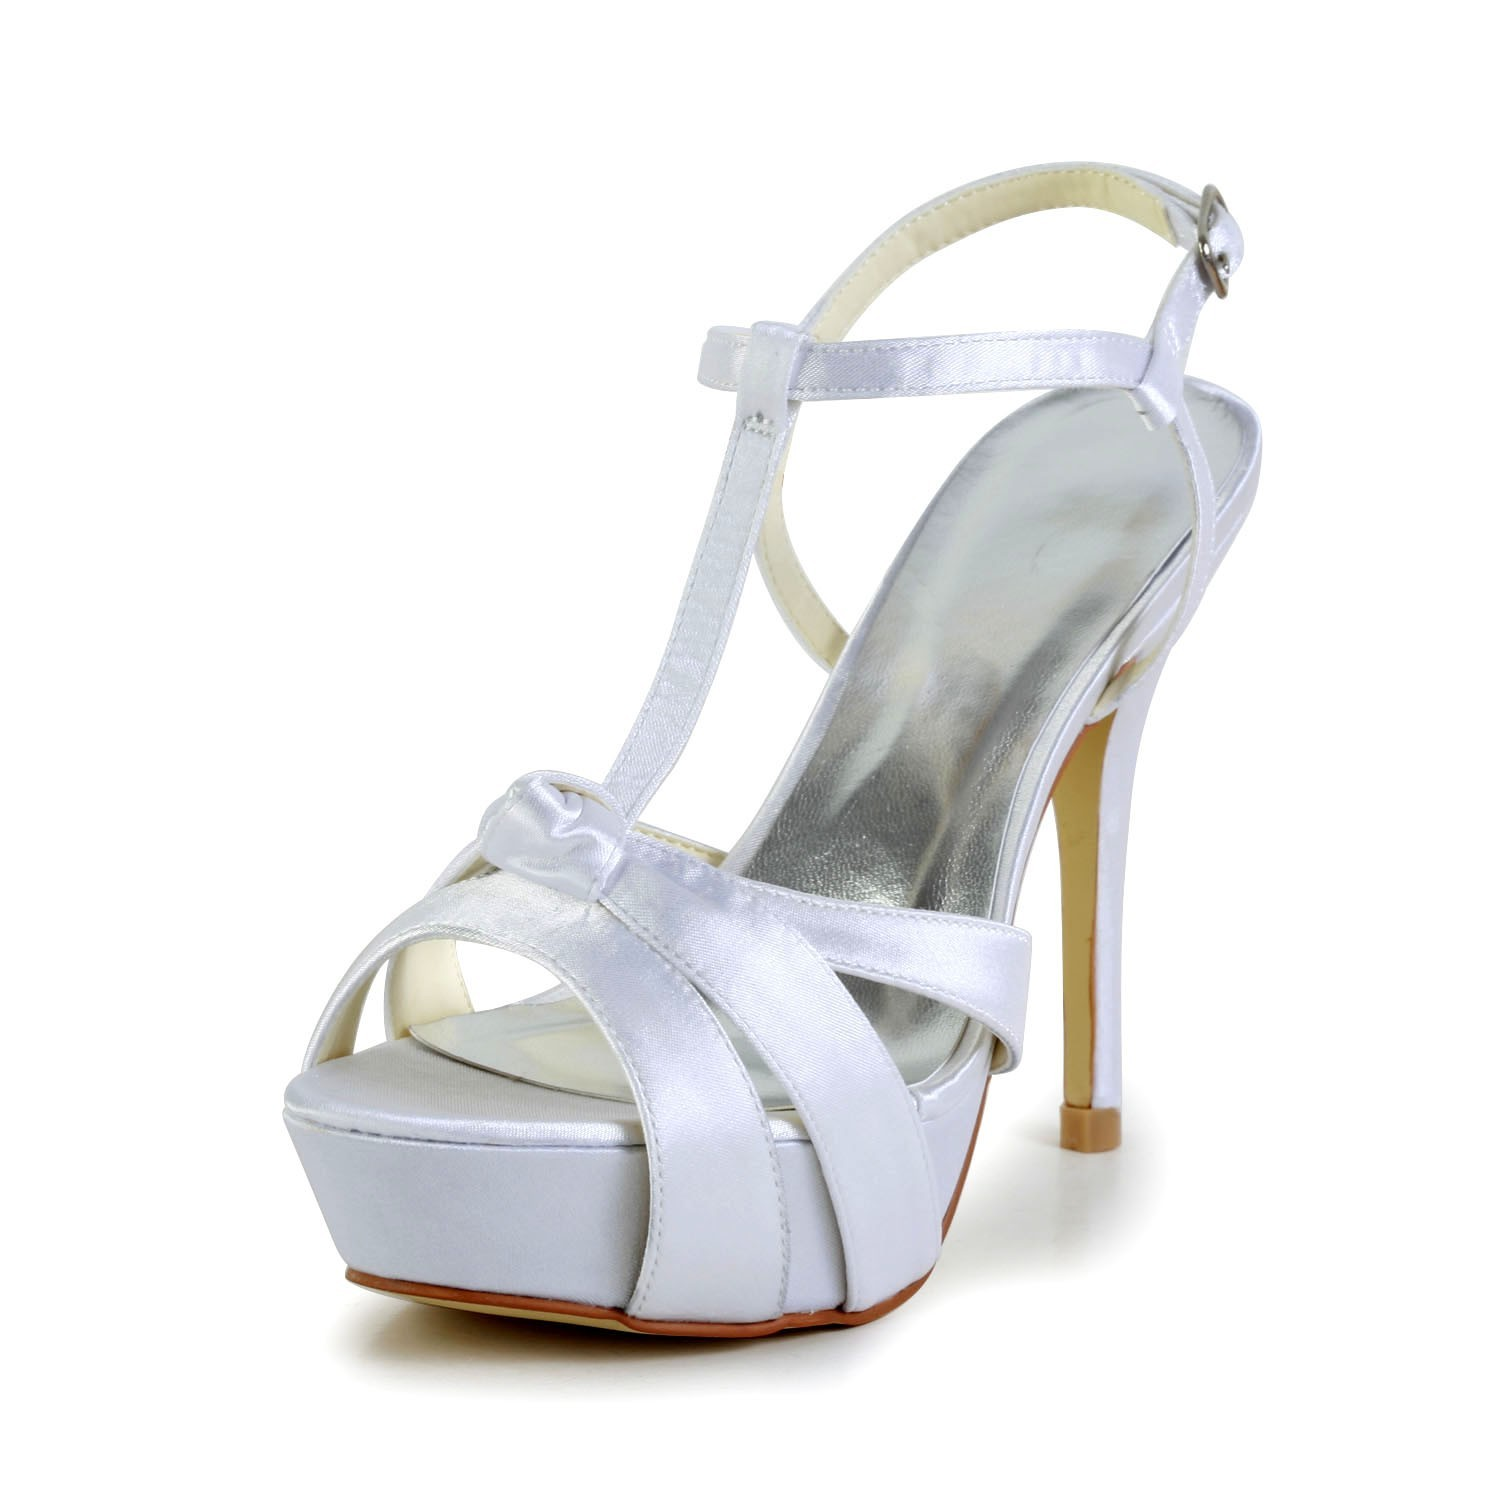 139a8866e03 Women s Satin Stiletto Heel Peep Toe Slingbacks Sandal White Wedding Shoes  With Buckle